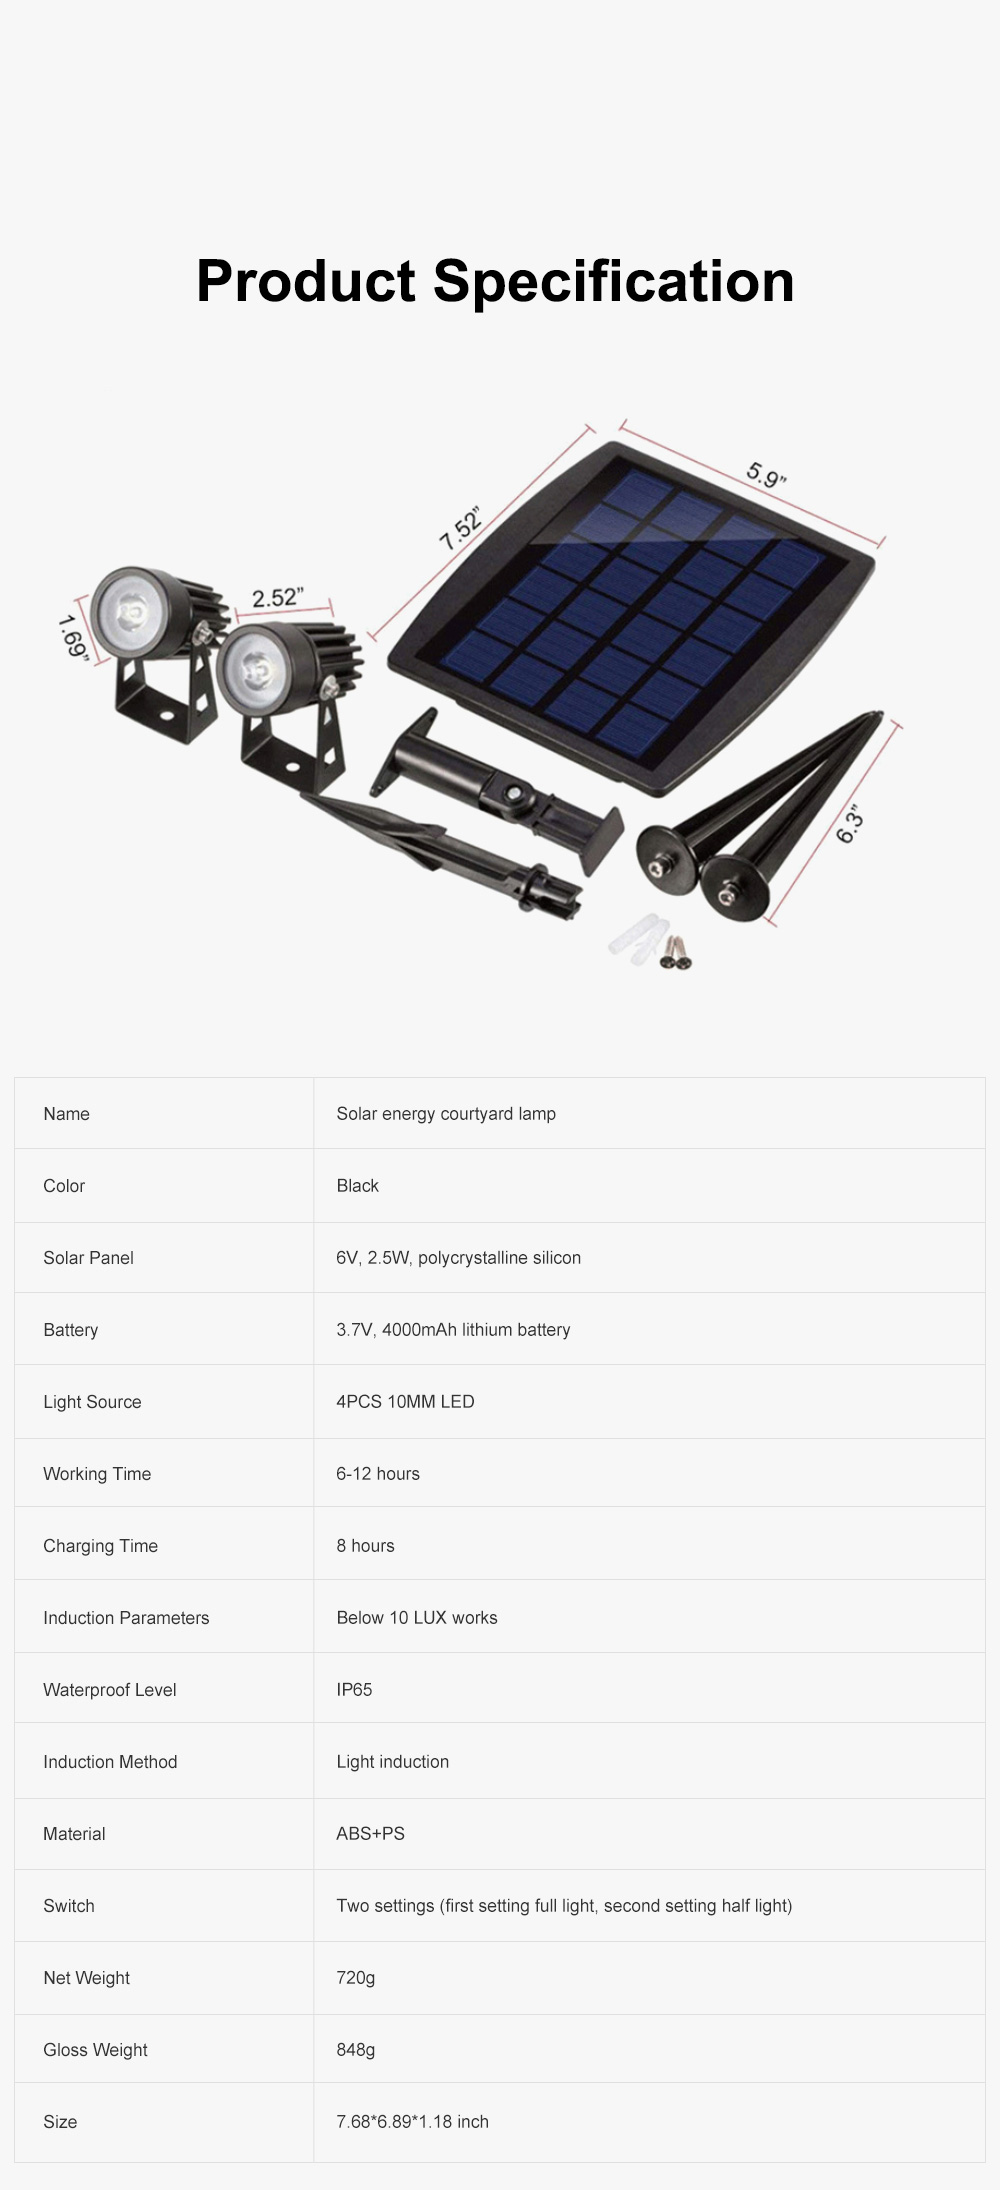 Waterproof Solar Energy Powered Courtyard LED Garden Lamp Large Power Lawn Spot Light Projector Lamp 6